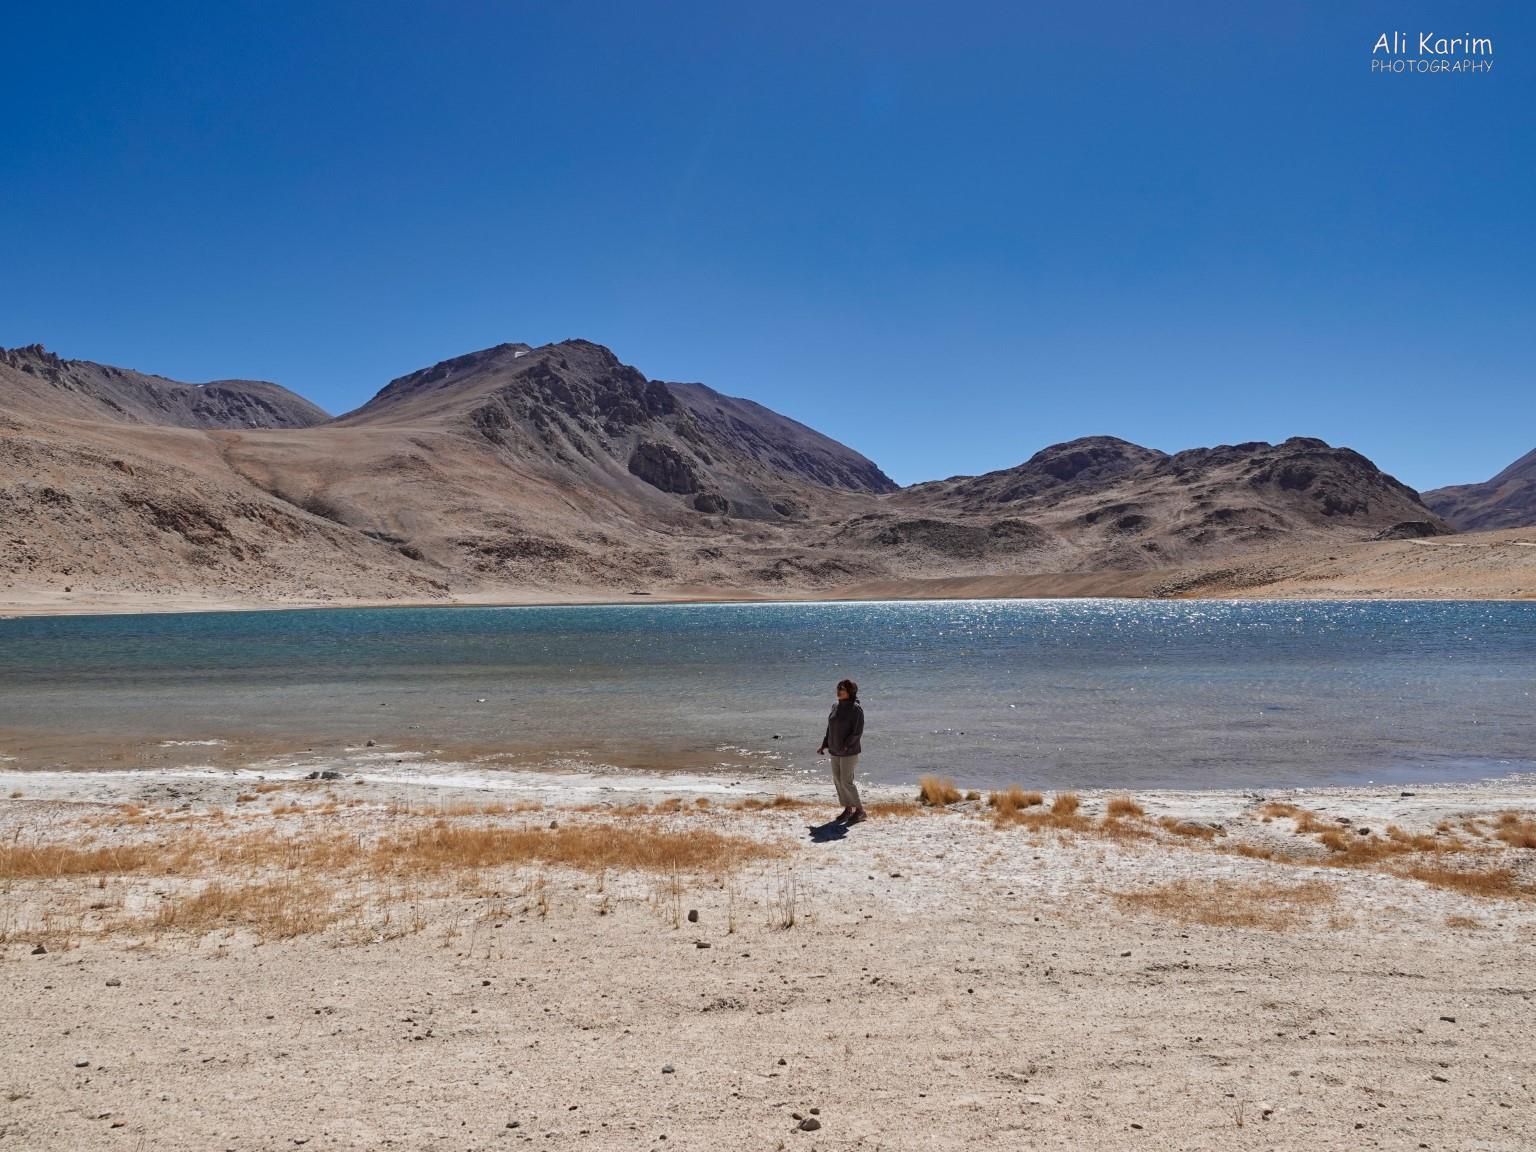 Langar, Tajikistan, Admiring the view at Chukur kul lake and stretching our legs with a short hike at 4000m (13,100ft)